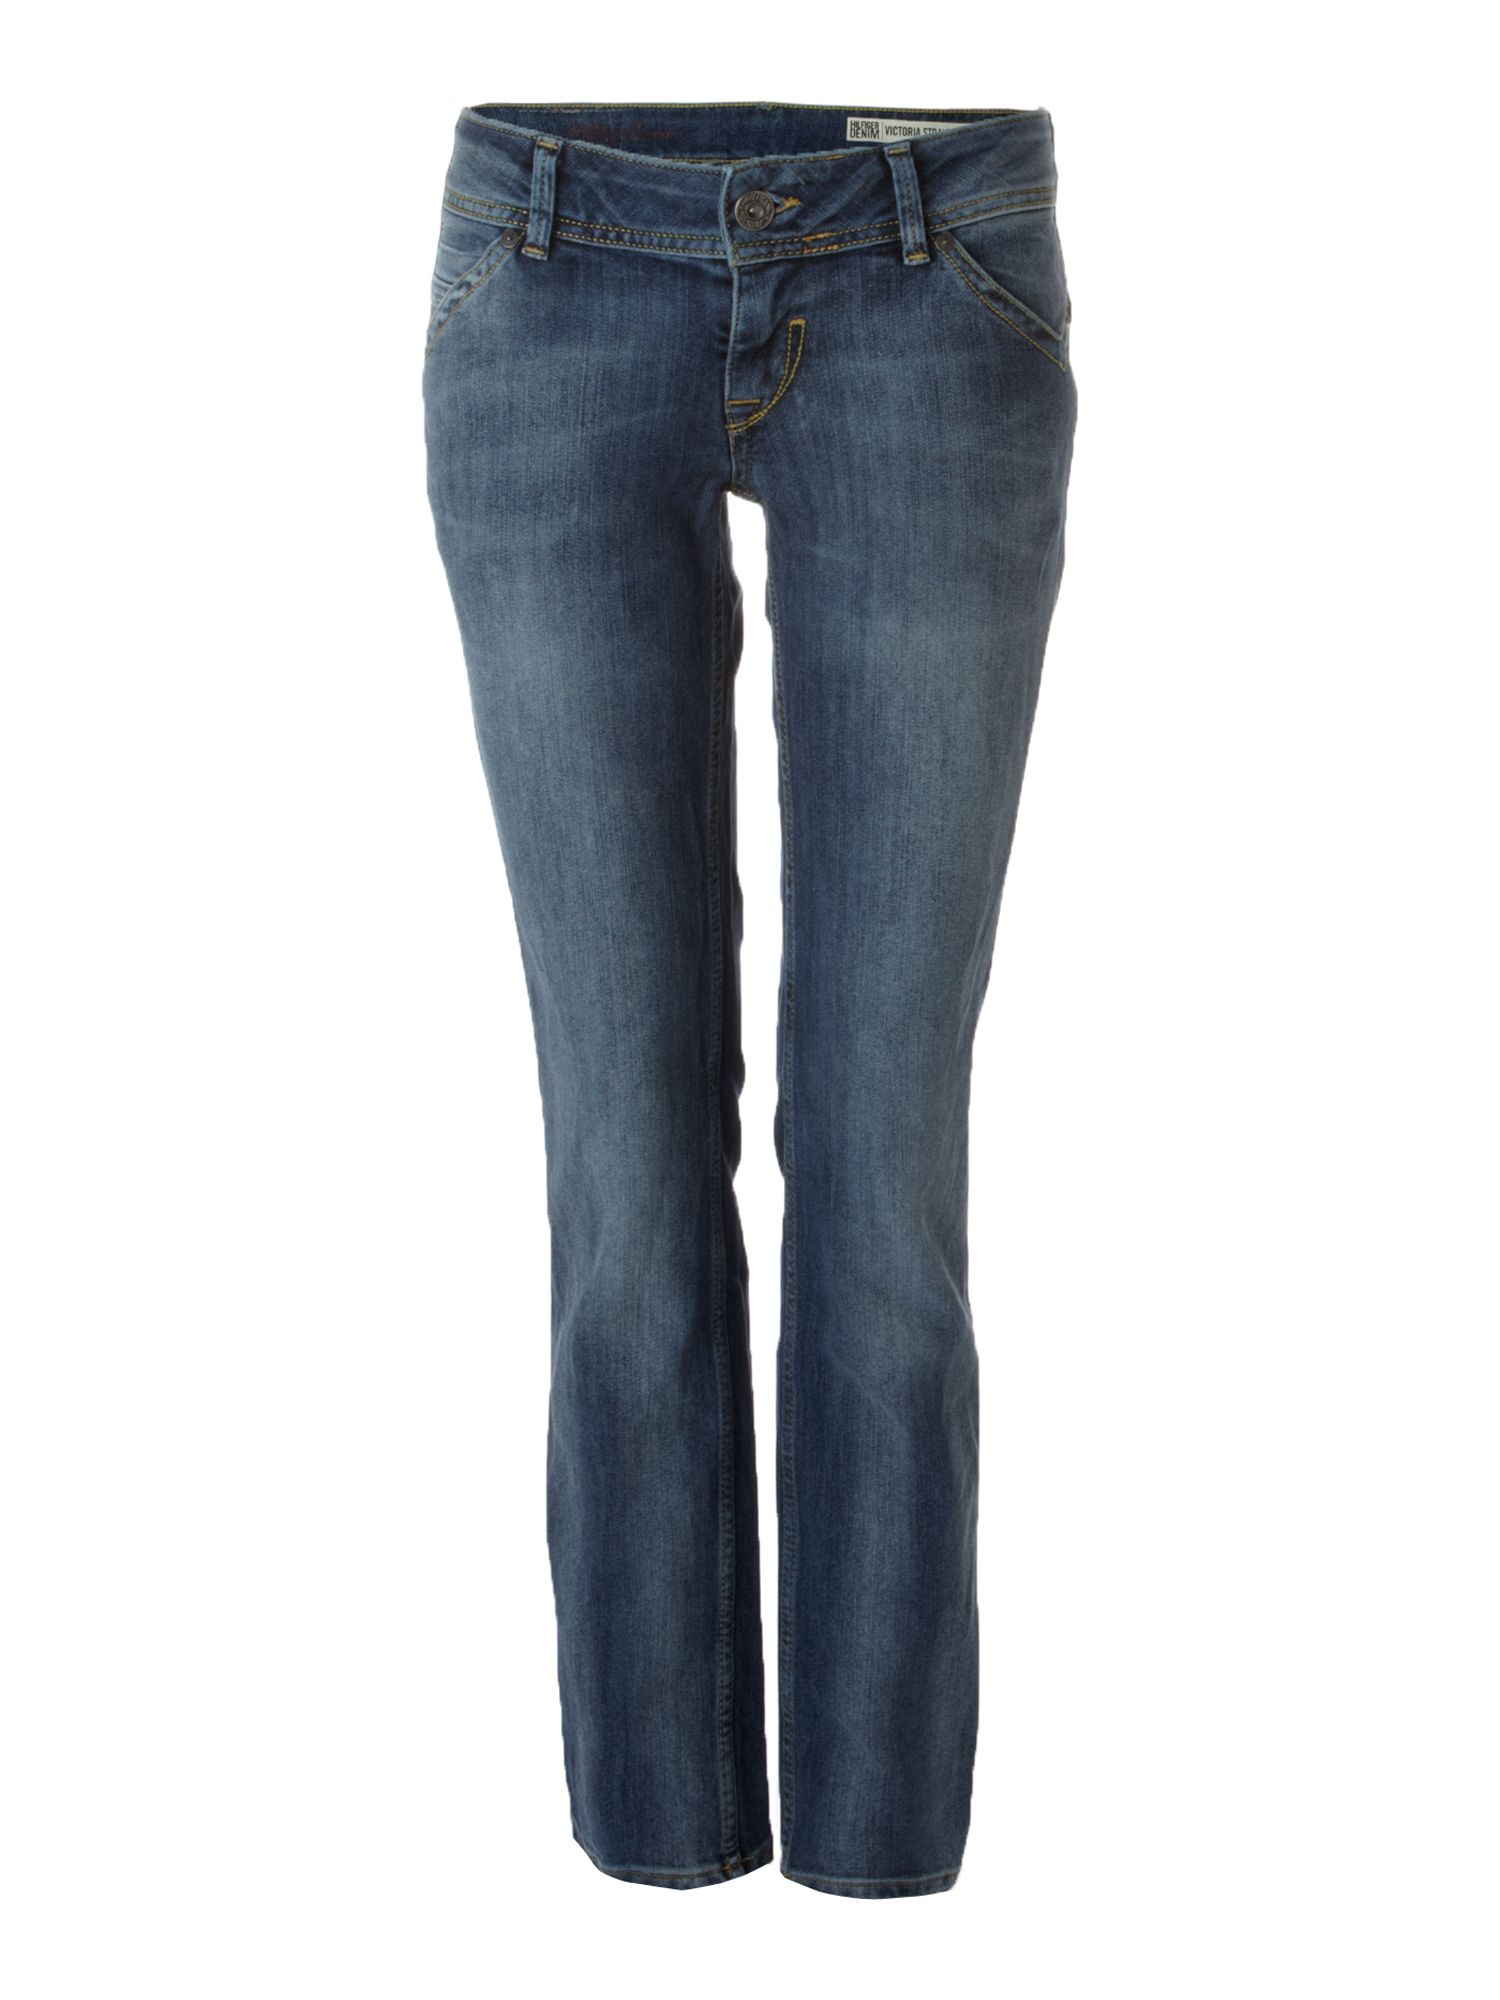 Tommy hilfiger Rome Absolute Blue Jeans in Blue (Navy) | Lyst